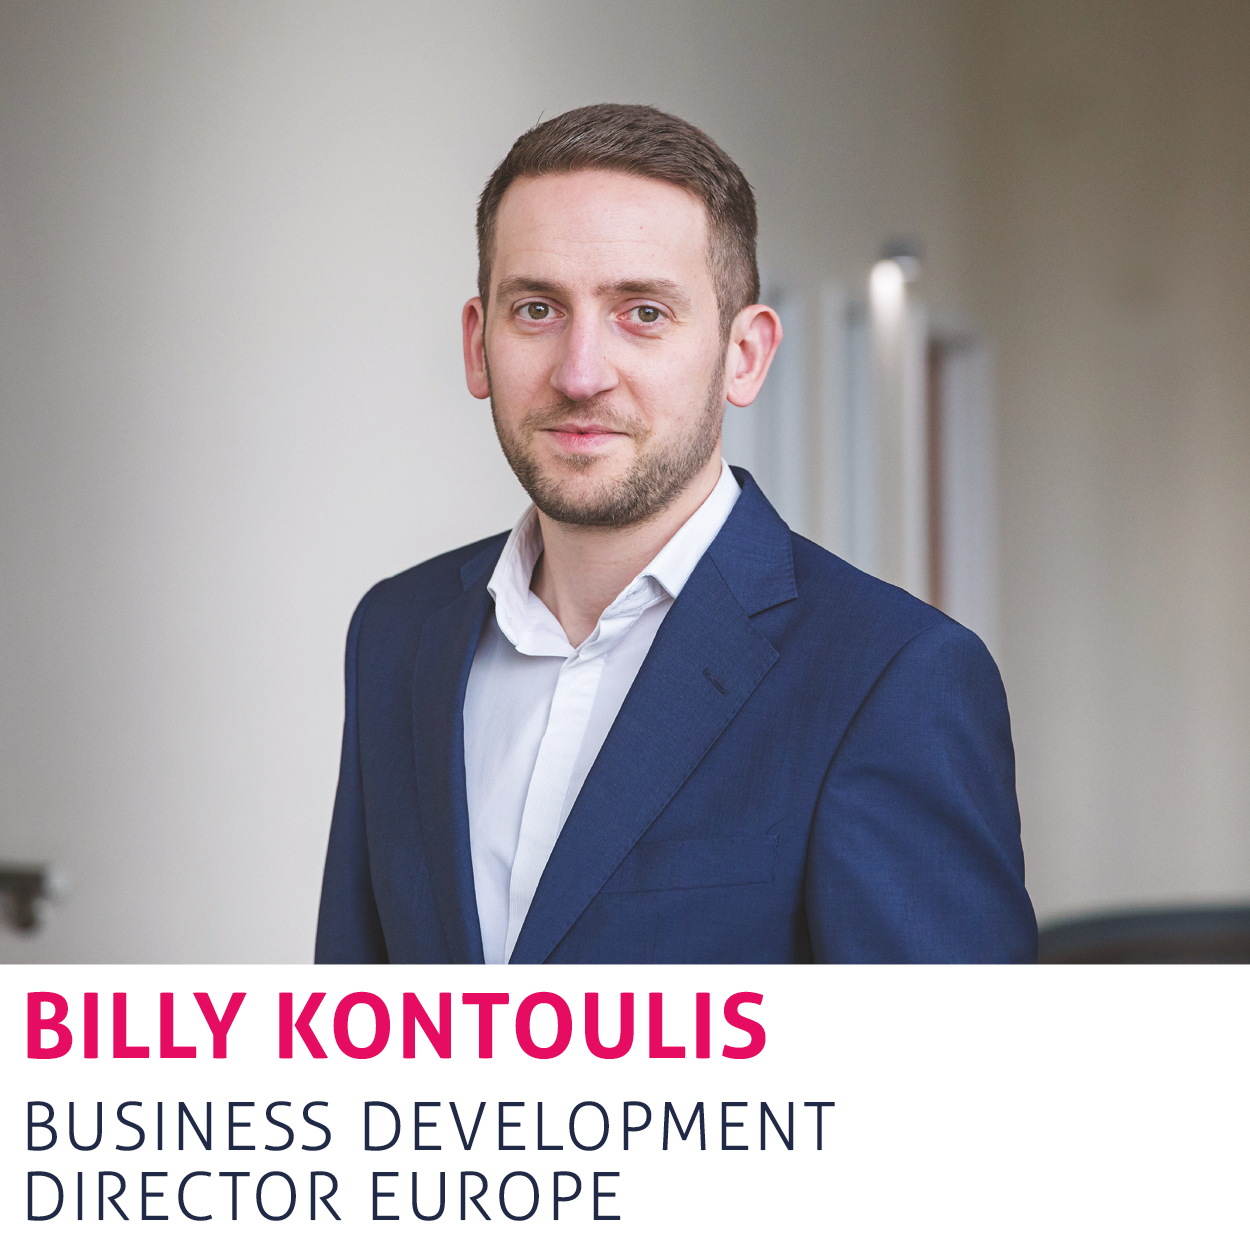 Copy of Billy Kontoulis - Business Development Director - Europe